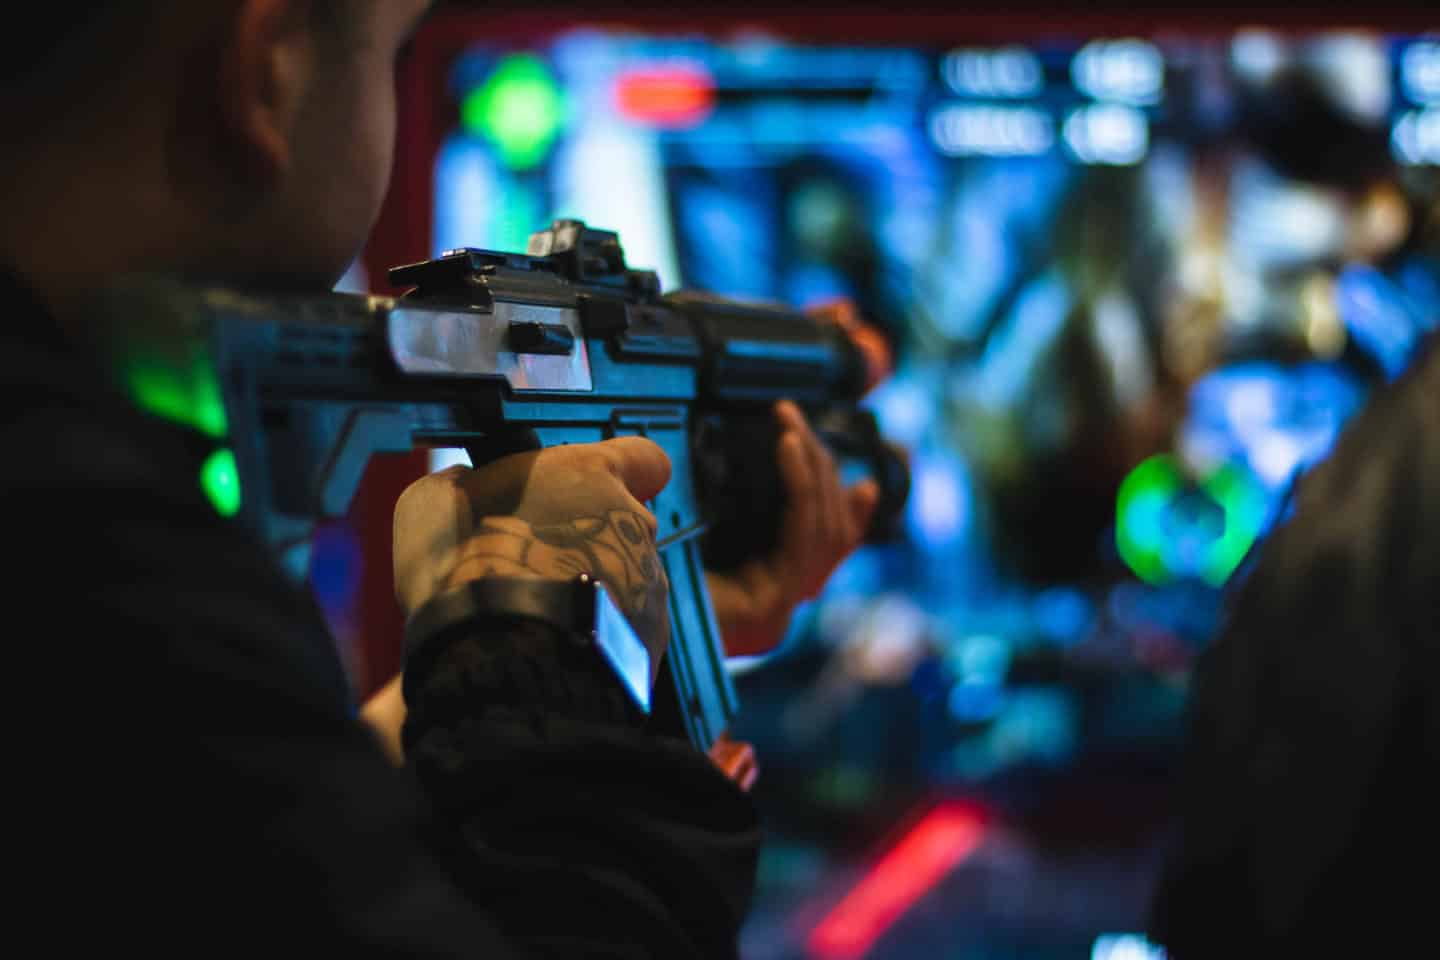 Shooting game at The Rec Room Toronto